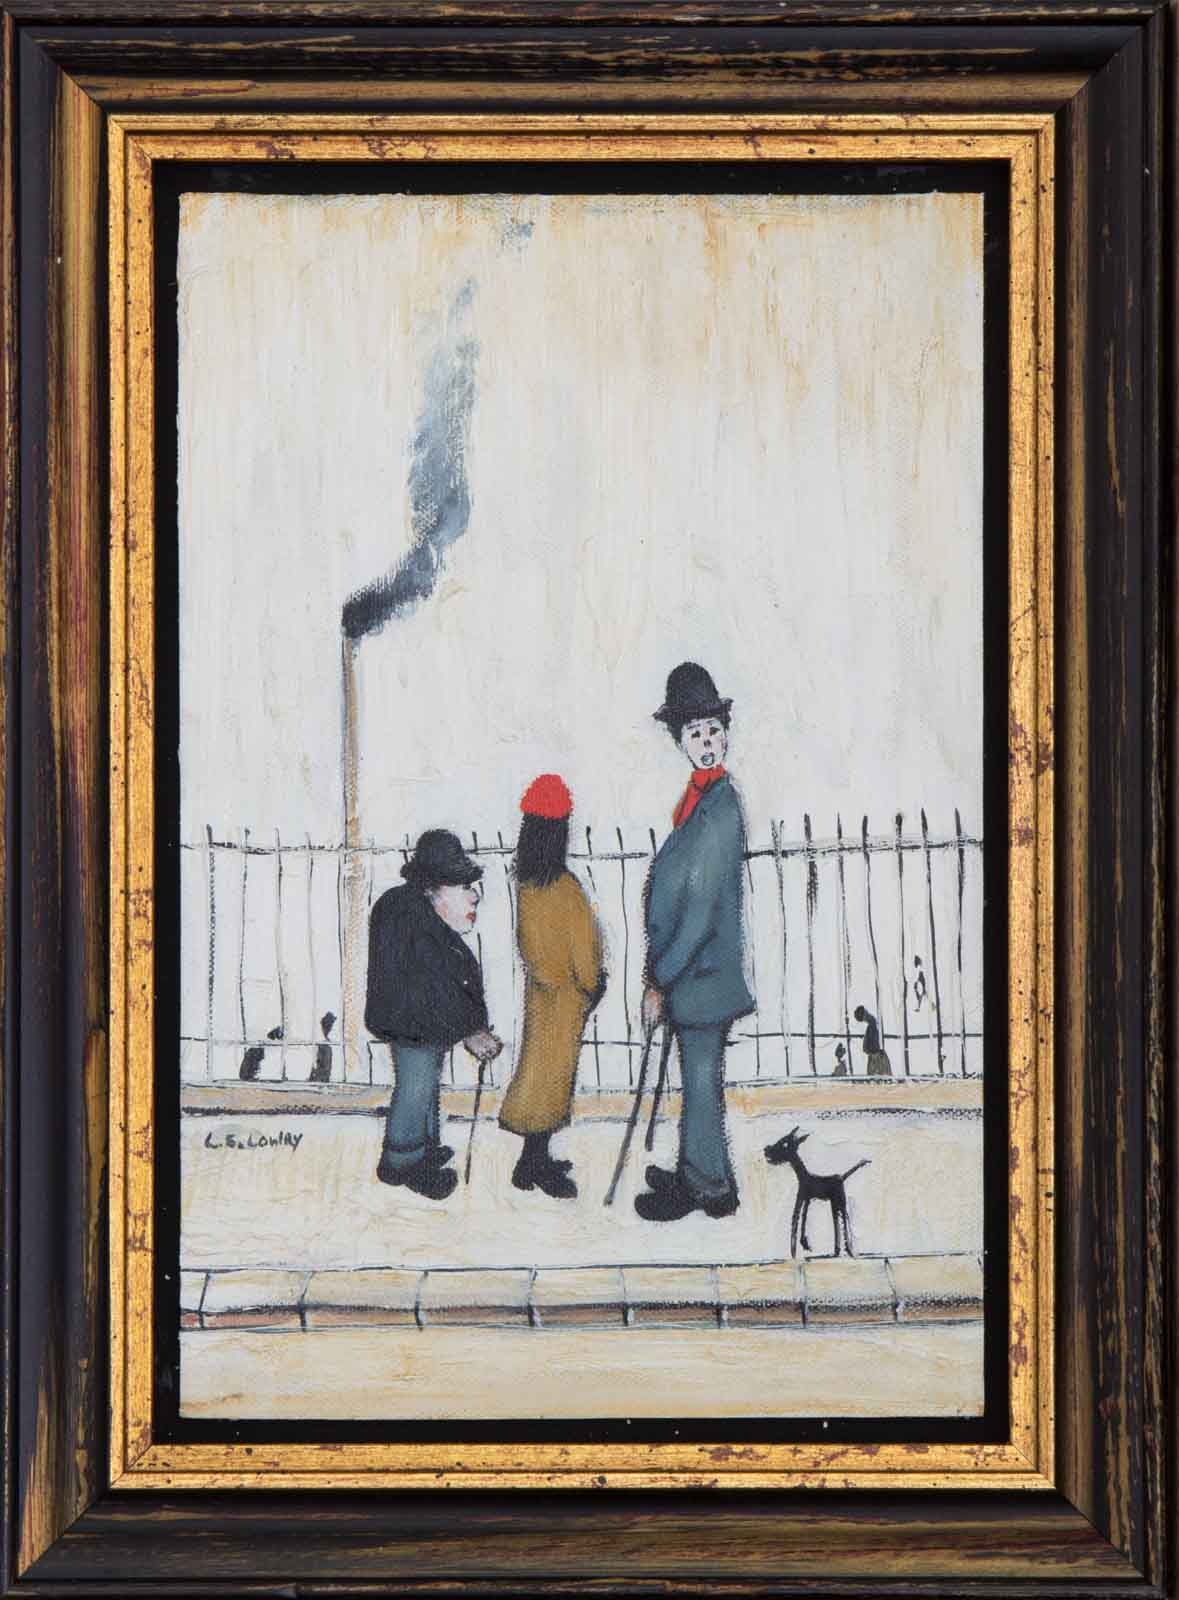 Bowler Hats after L.S Lowry